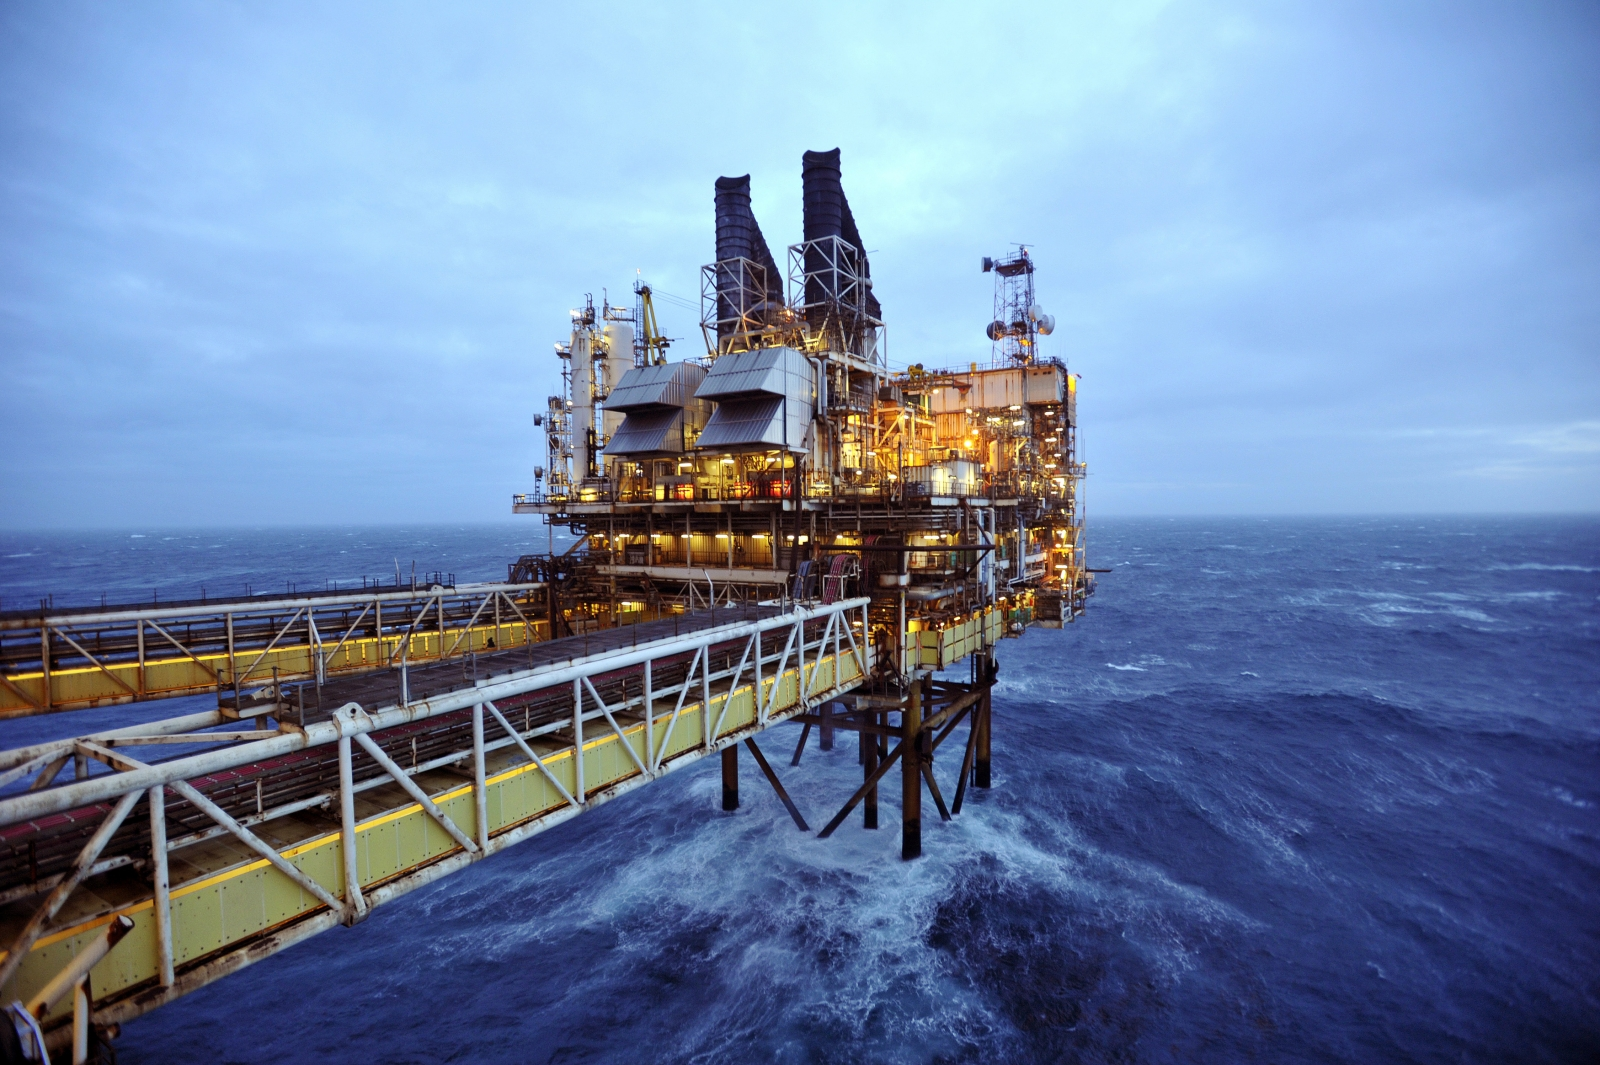 BP oil platform, North Sea